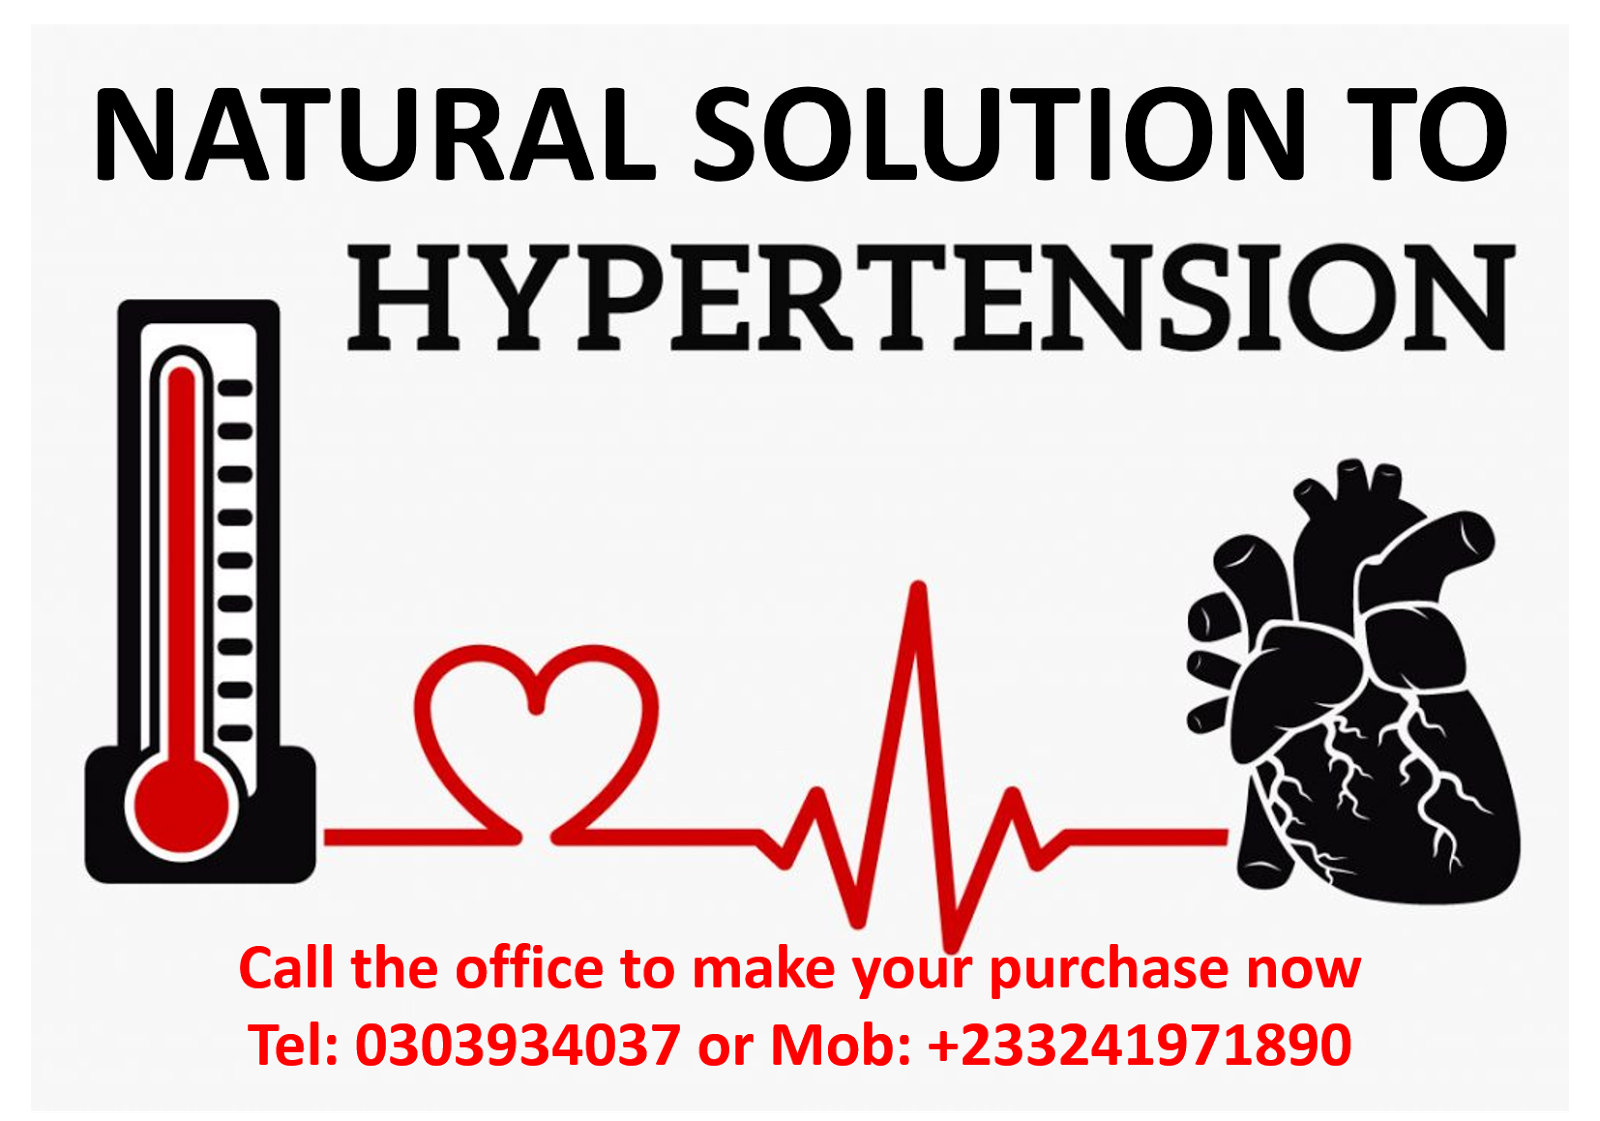 Hypertension Treatment - Causes - symptoms - effects